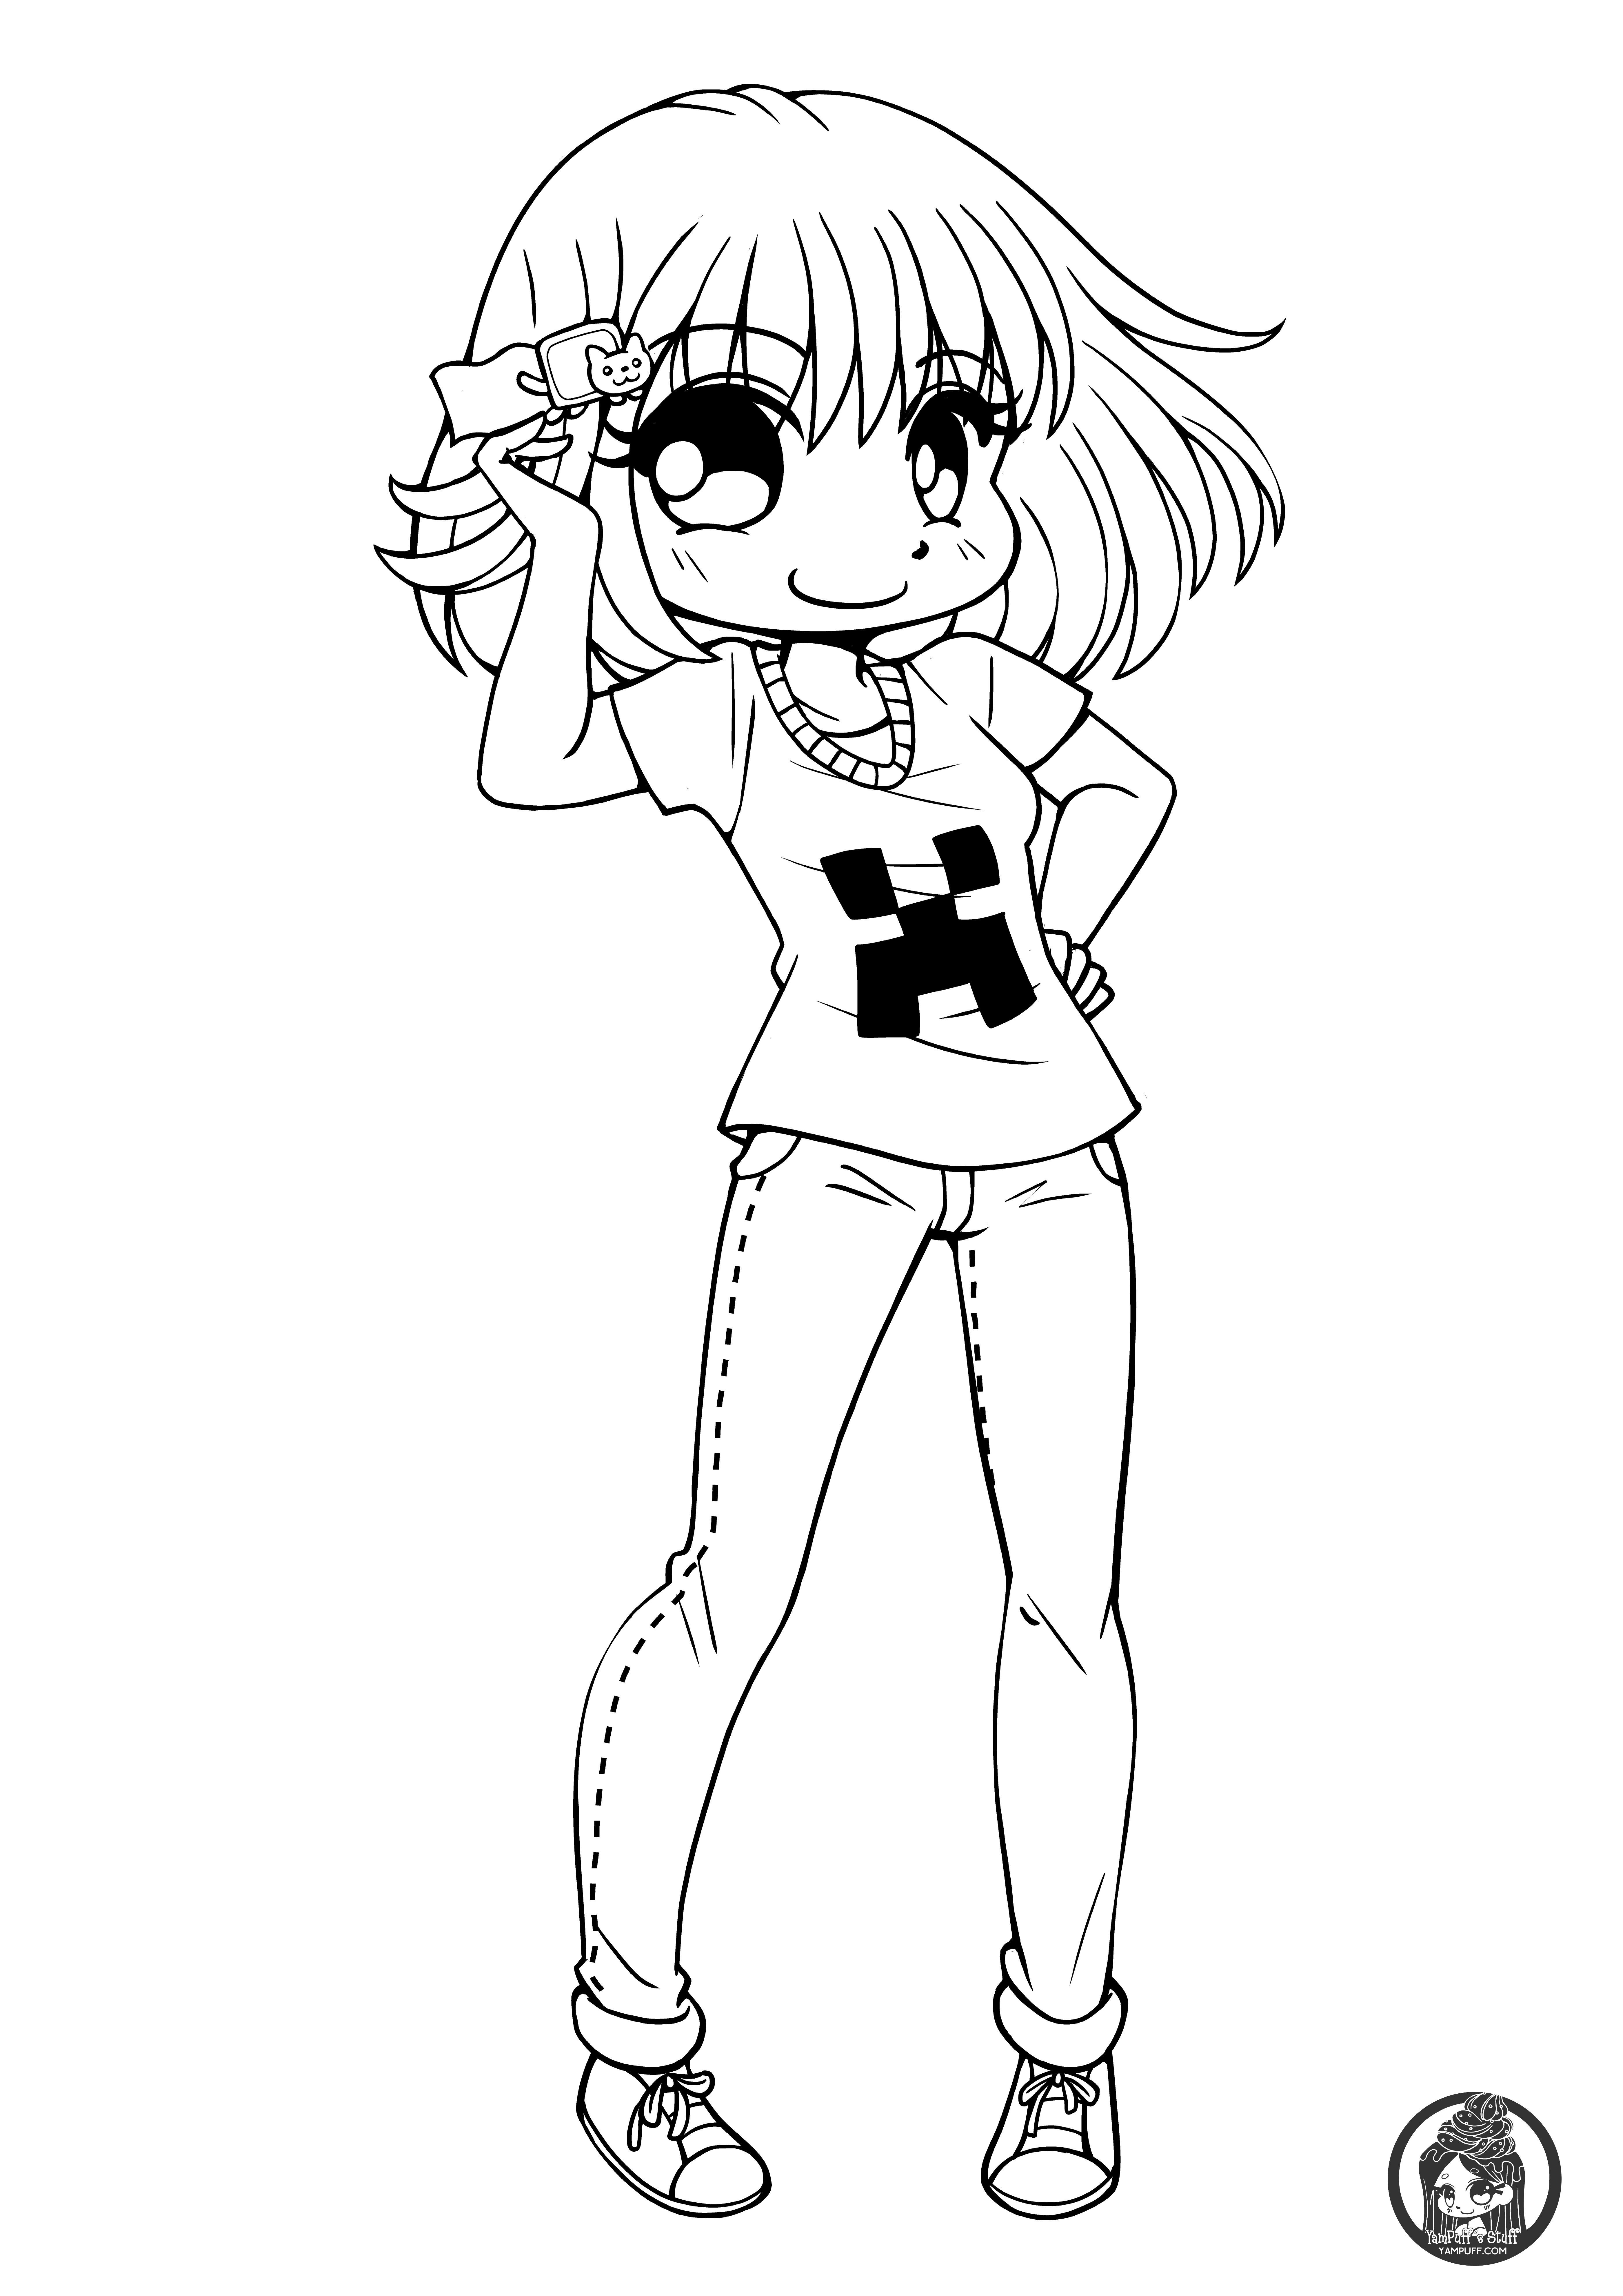 Chibi Girl Coloring Pages  Chibis Free Chibi Coloring Pages • YamPuff s Stuff